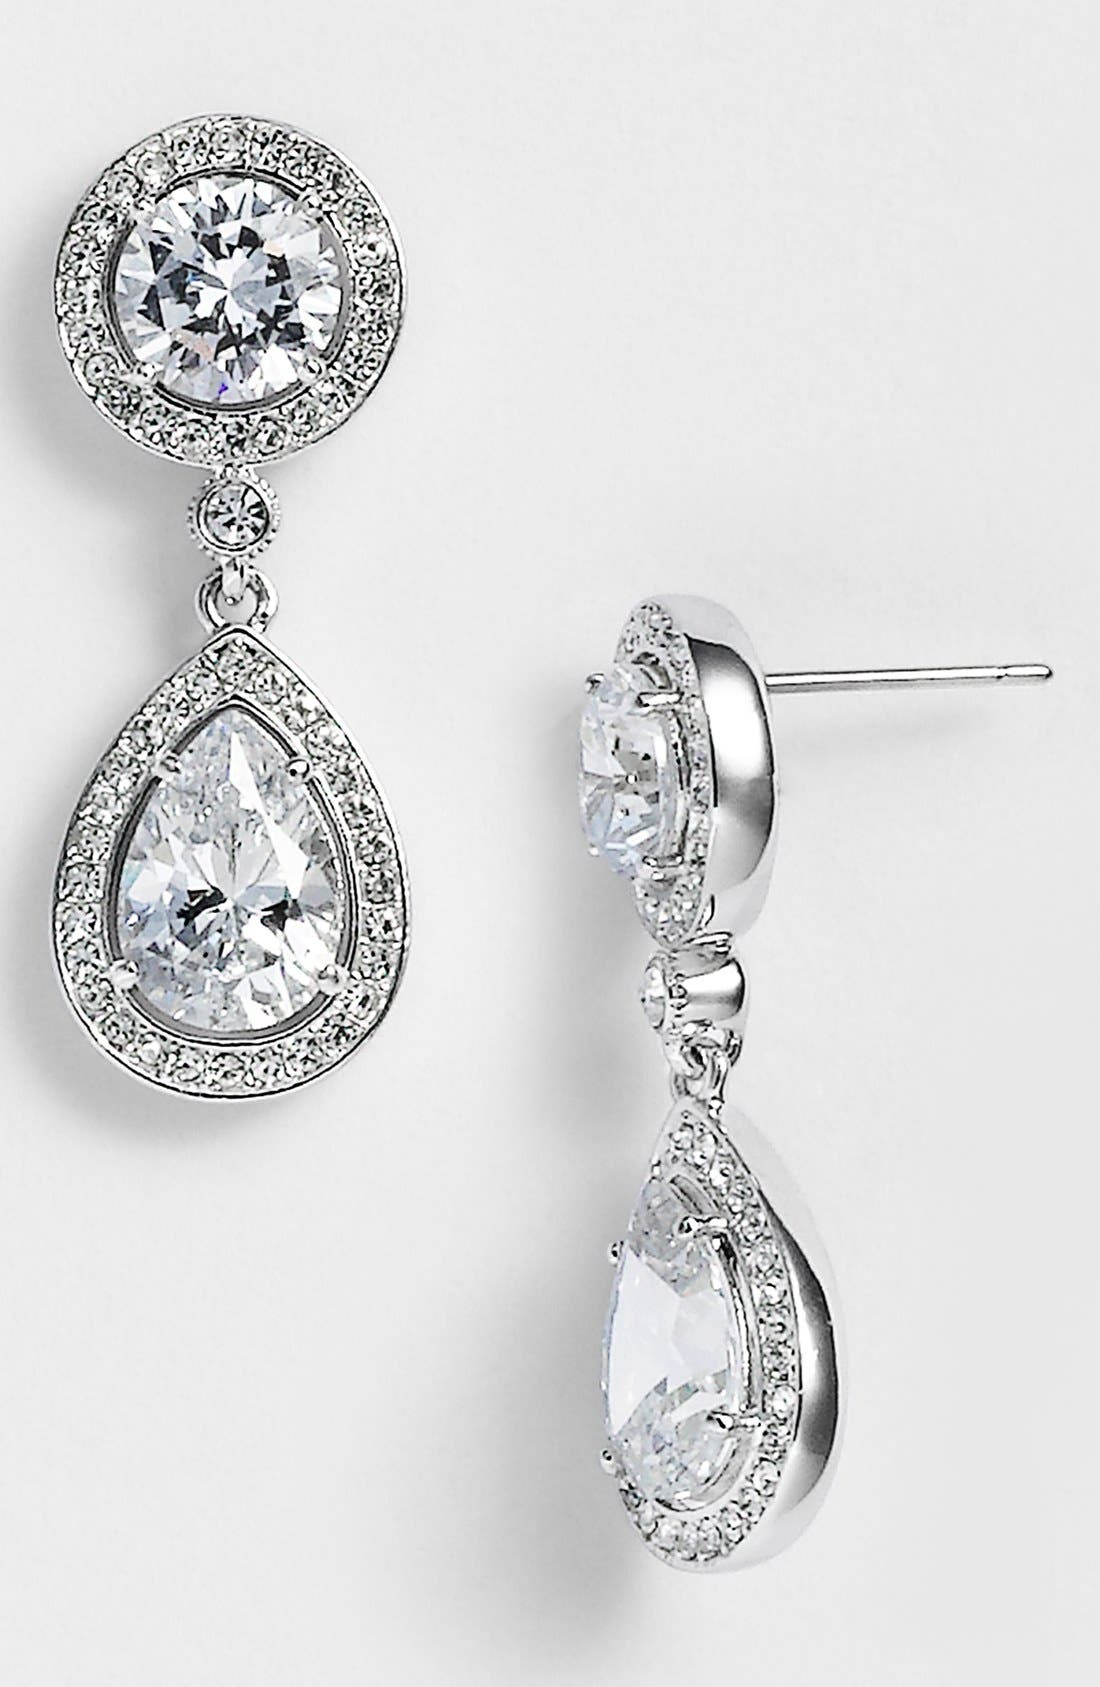 Alternate Image 1 Selected - Nadri Crystal & Cubic Zirconia Drop Earrings (Nordstrom Exclusive)